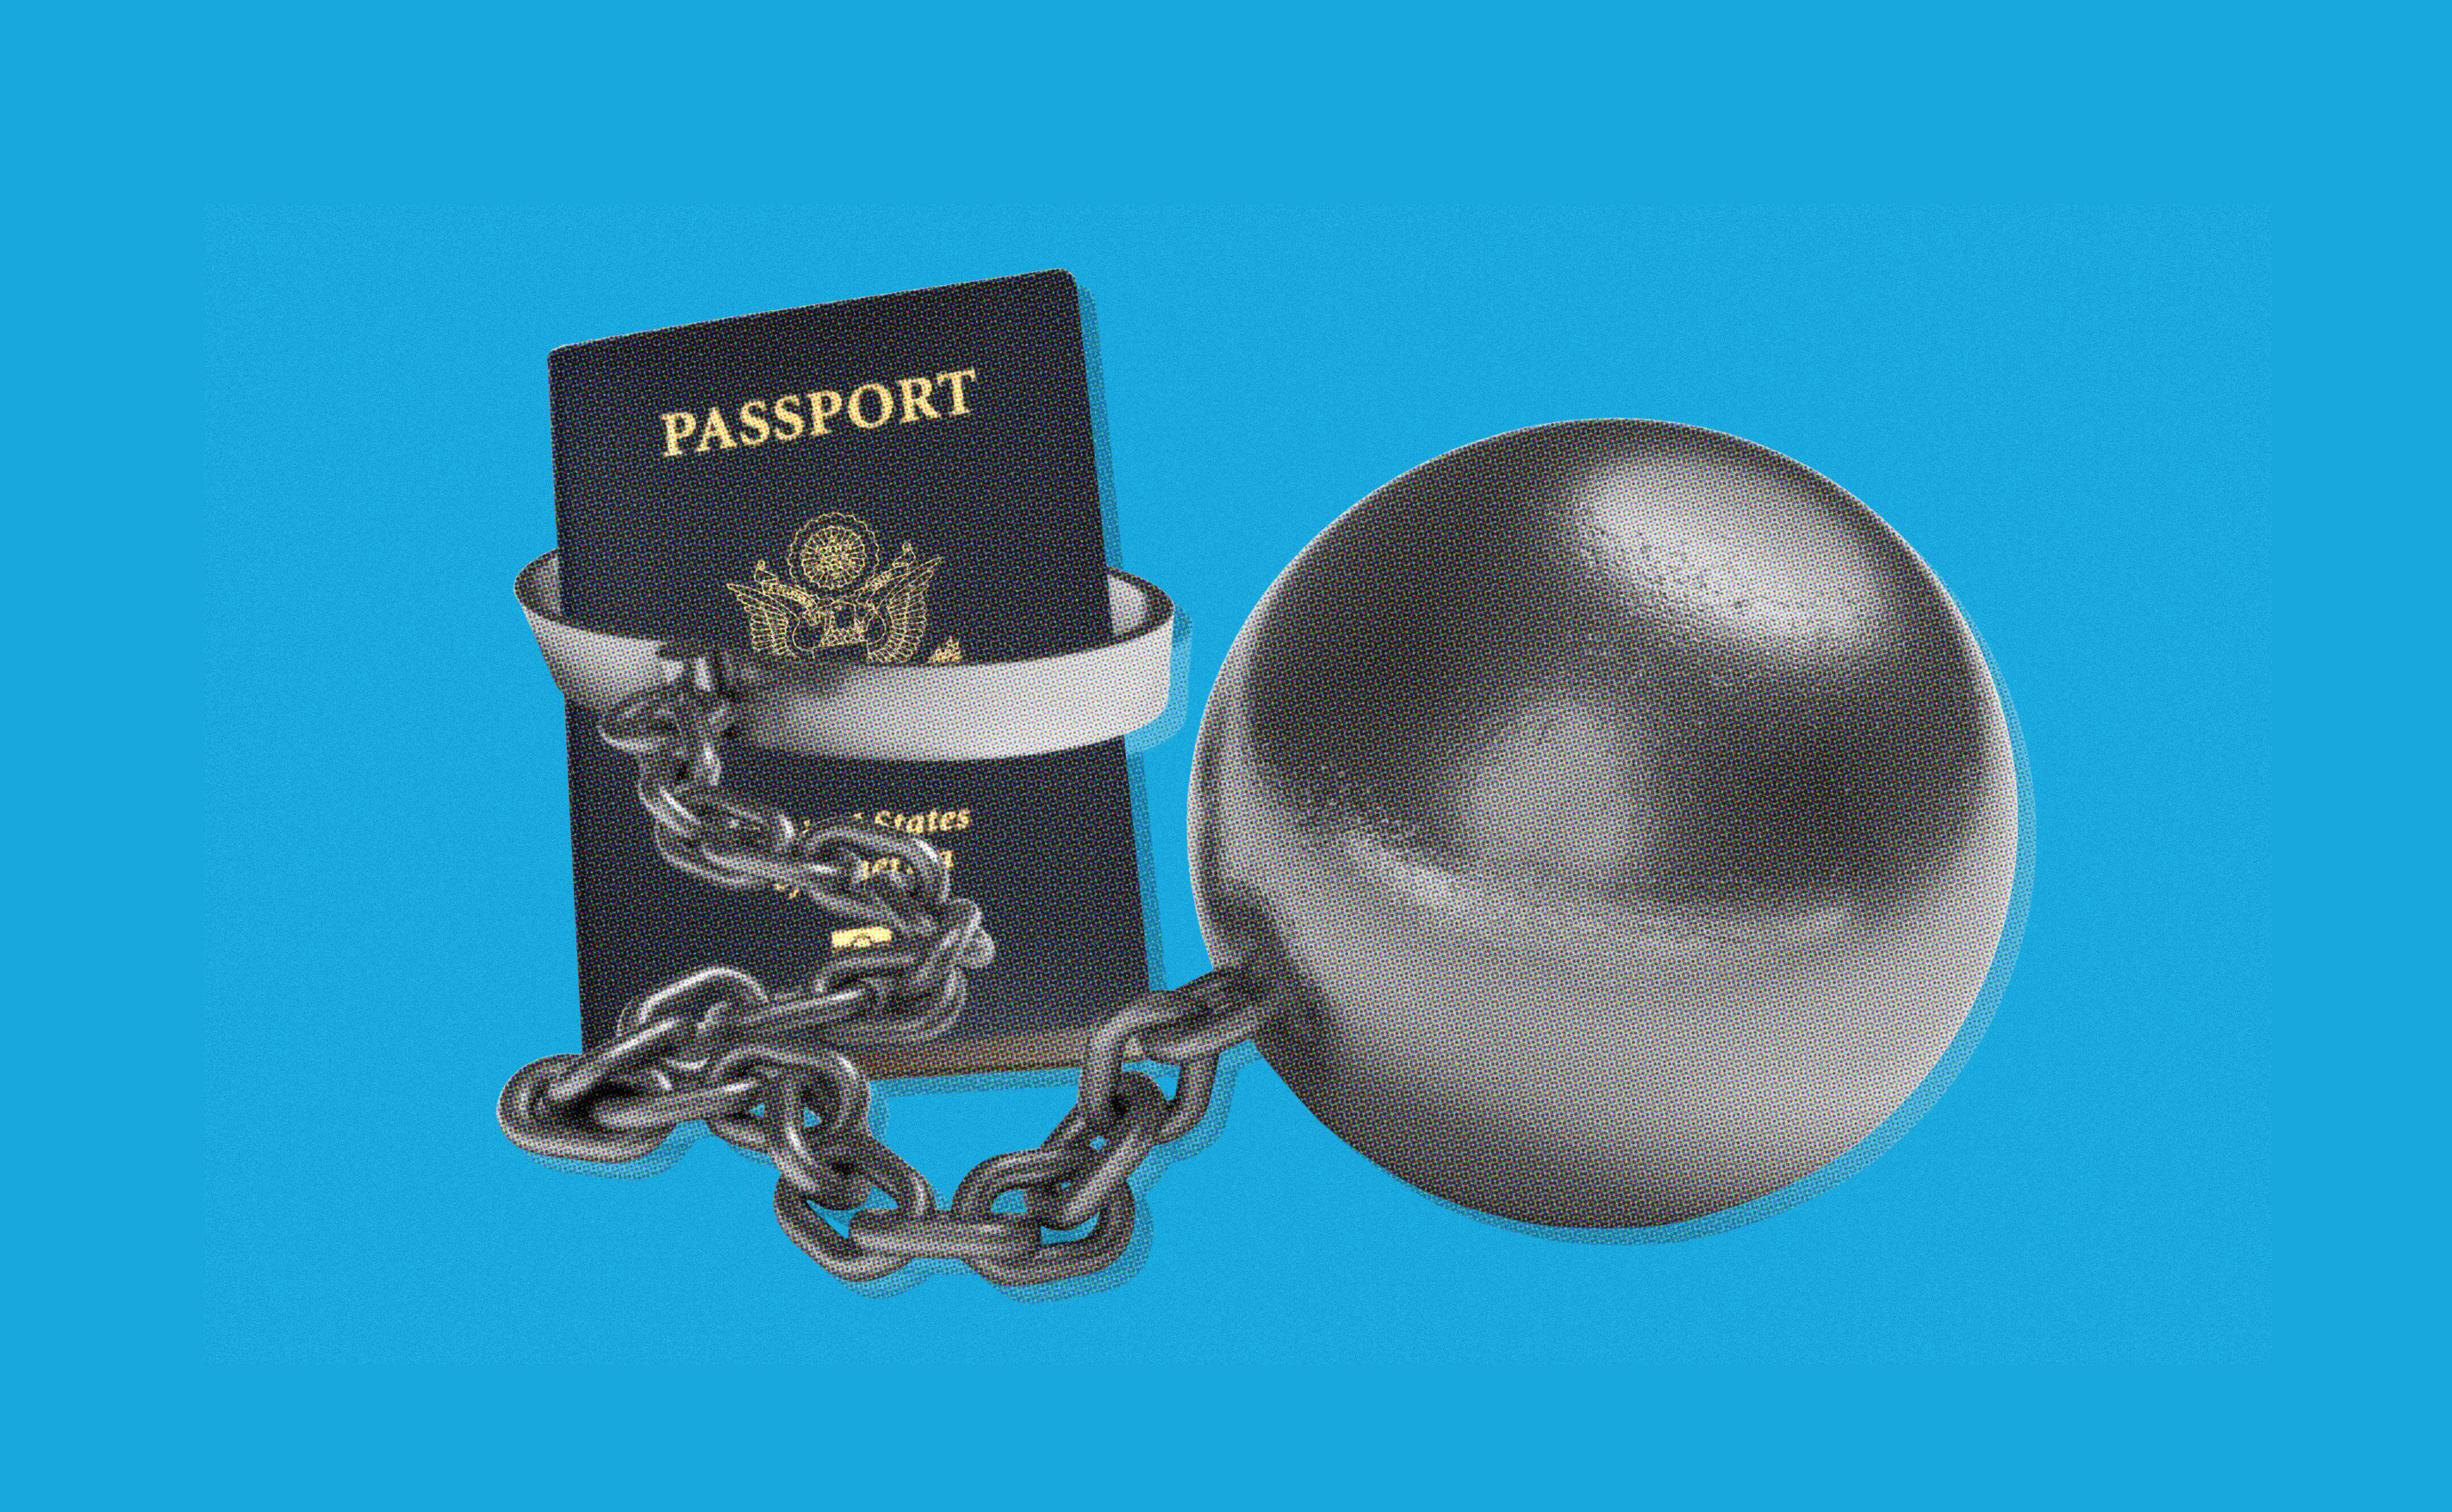 traveling abroad sucks if you're an ex-con - vice